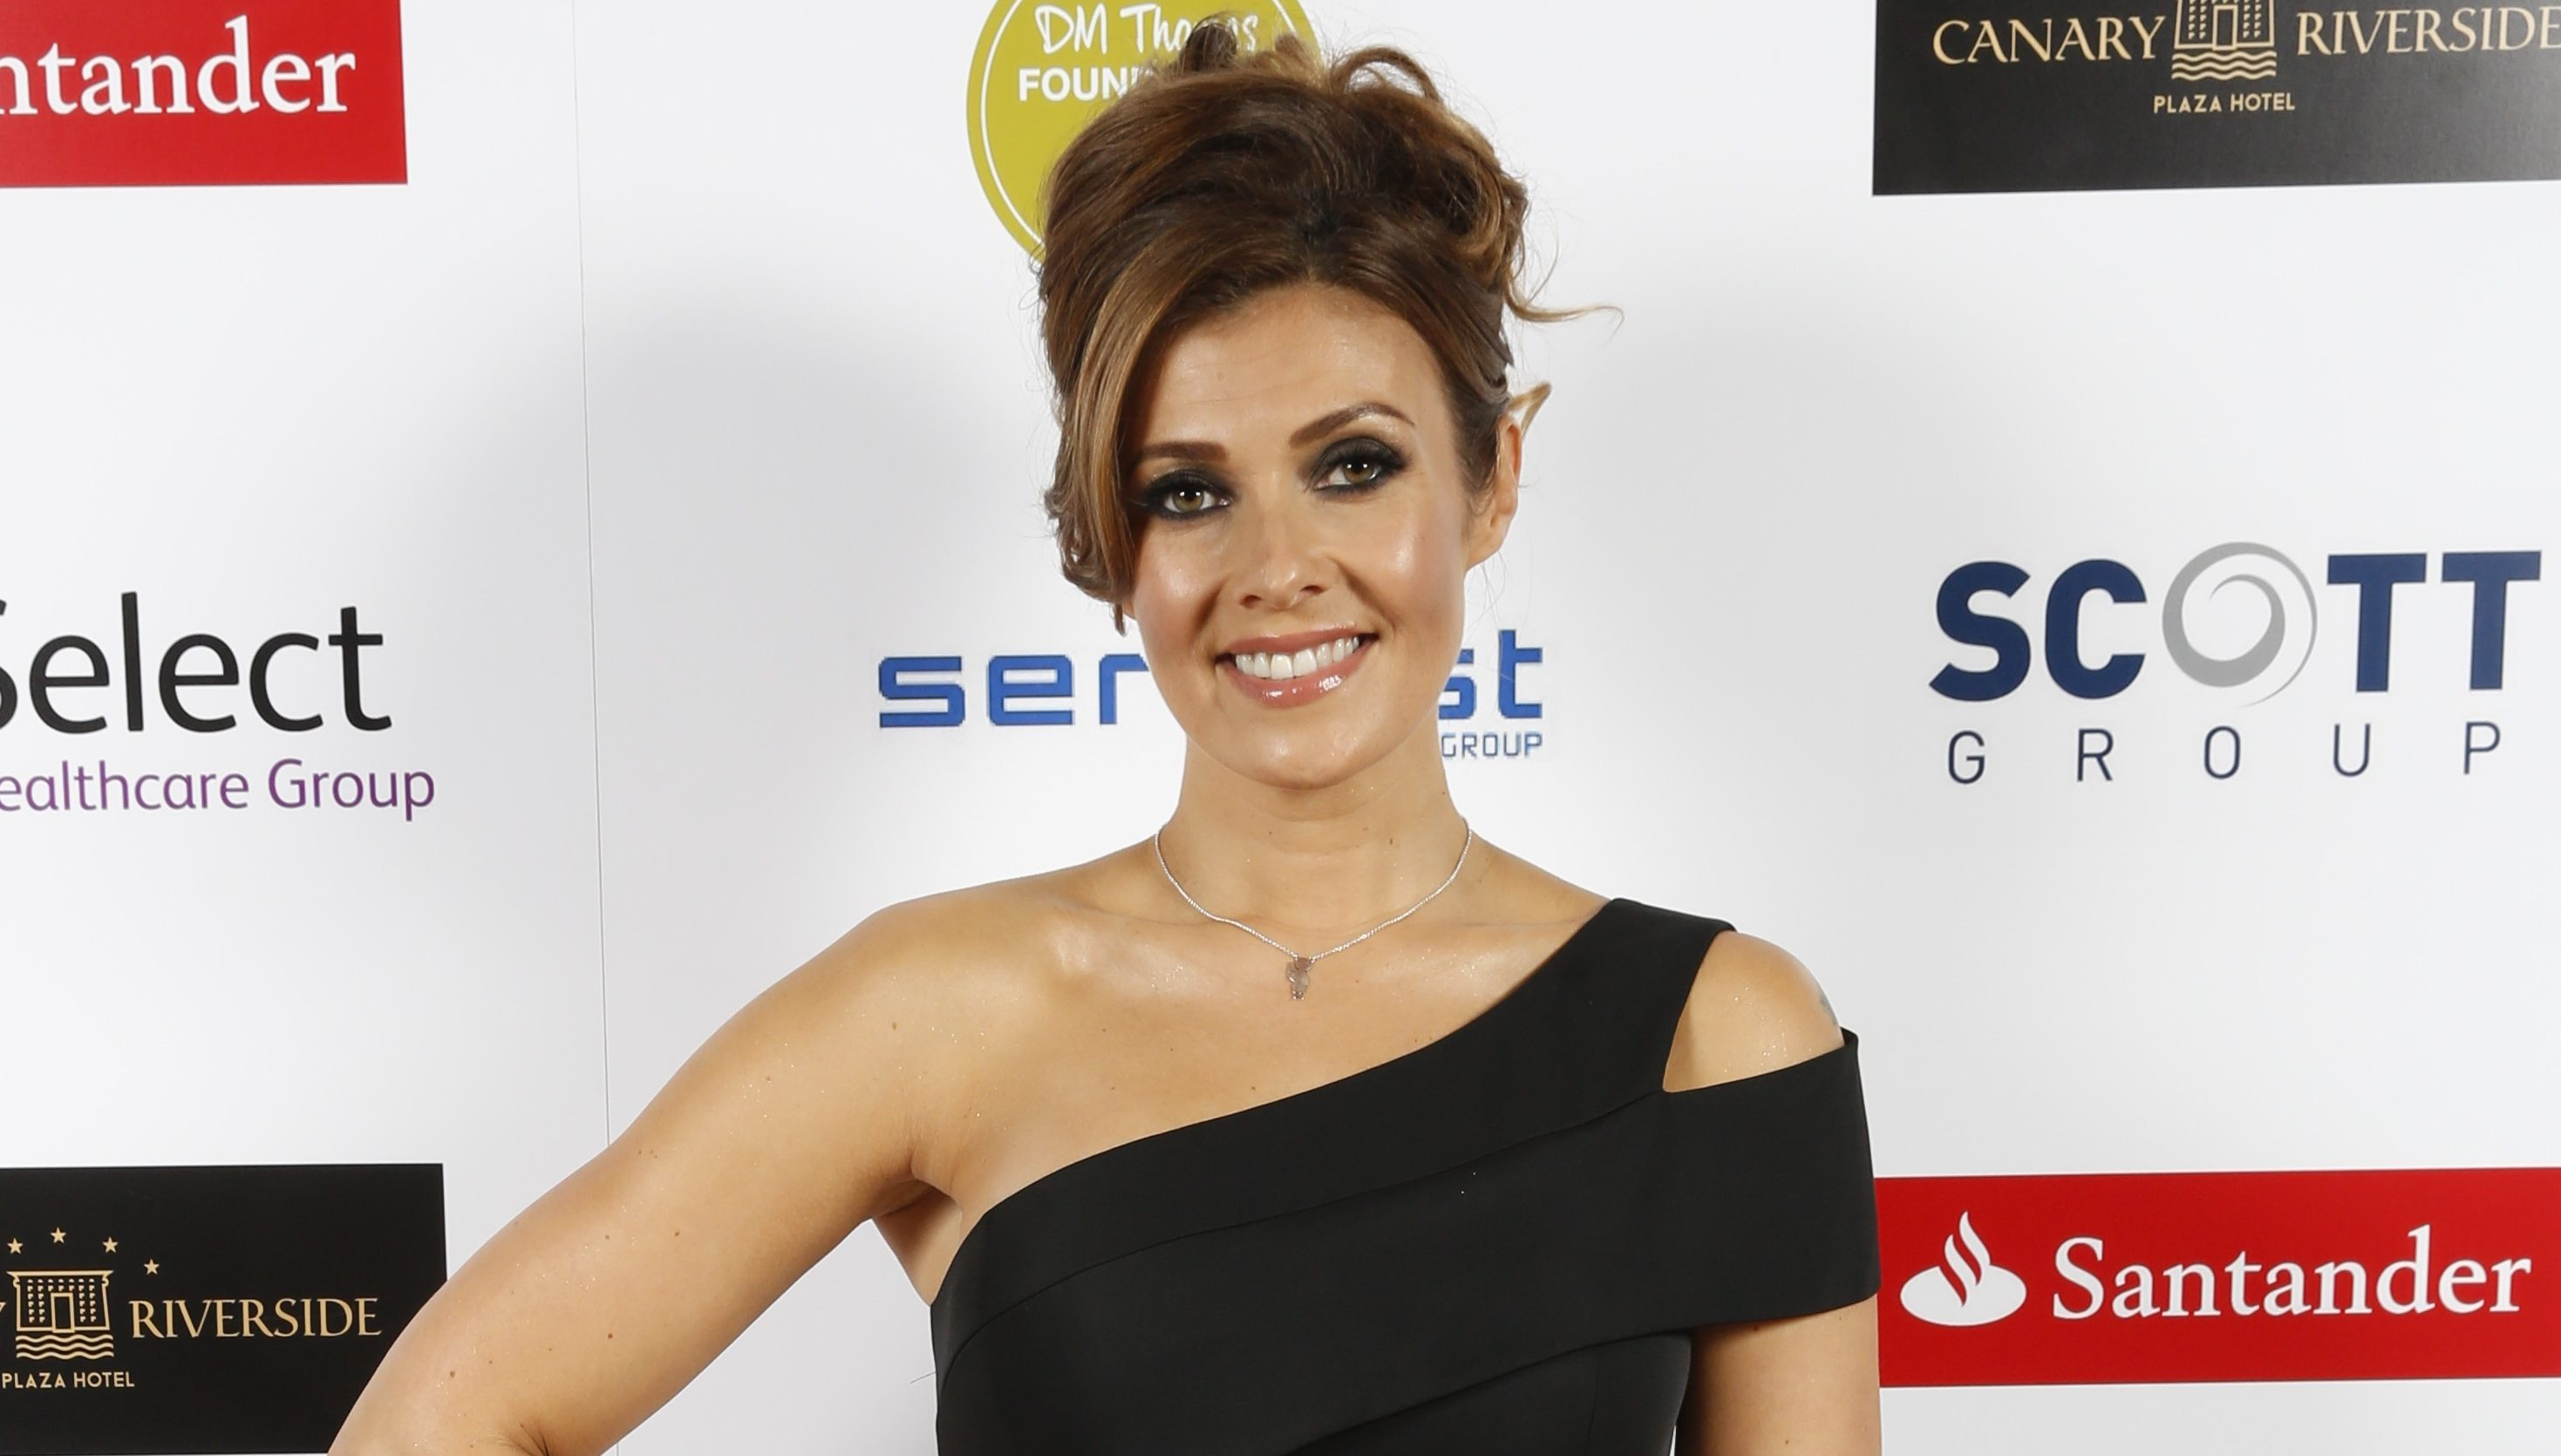 Kym Marsh confirms romance with Army hunk after split from Matt Baker